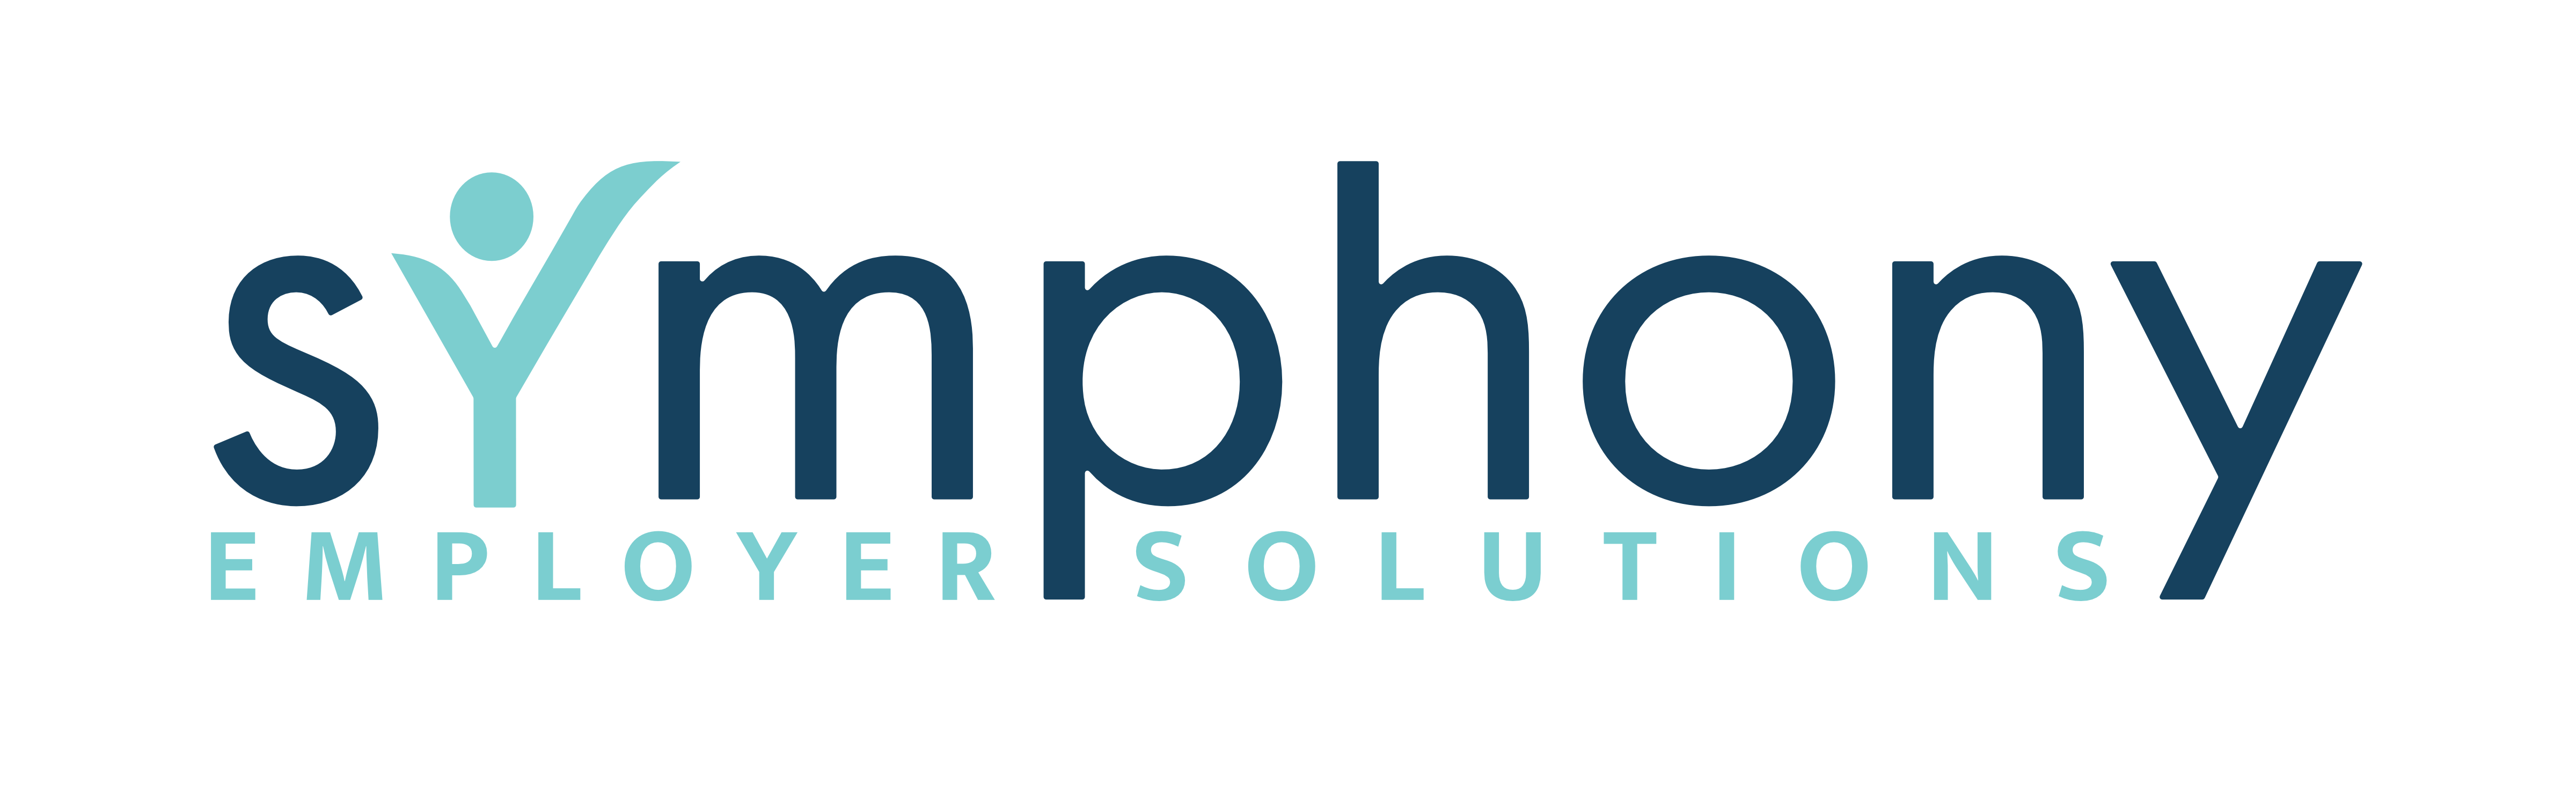 Symphony Employer Solutions - Providing Payroll & More to greater Boston, Massachusetts and New England towns from our metro west location in Natick